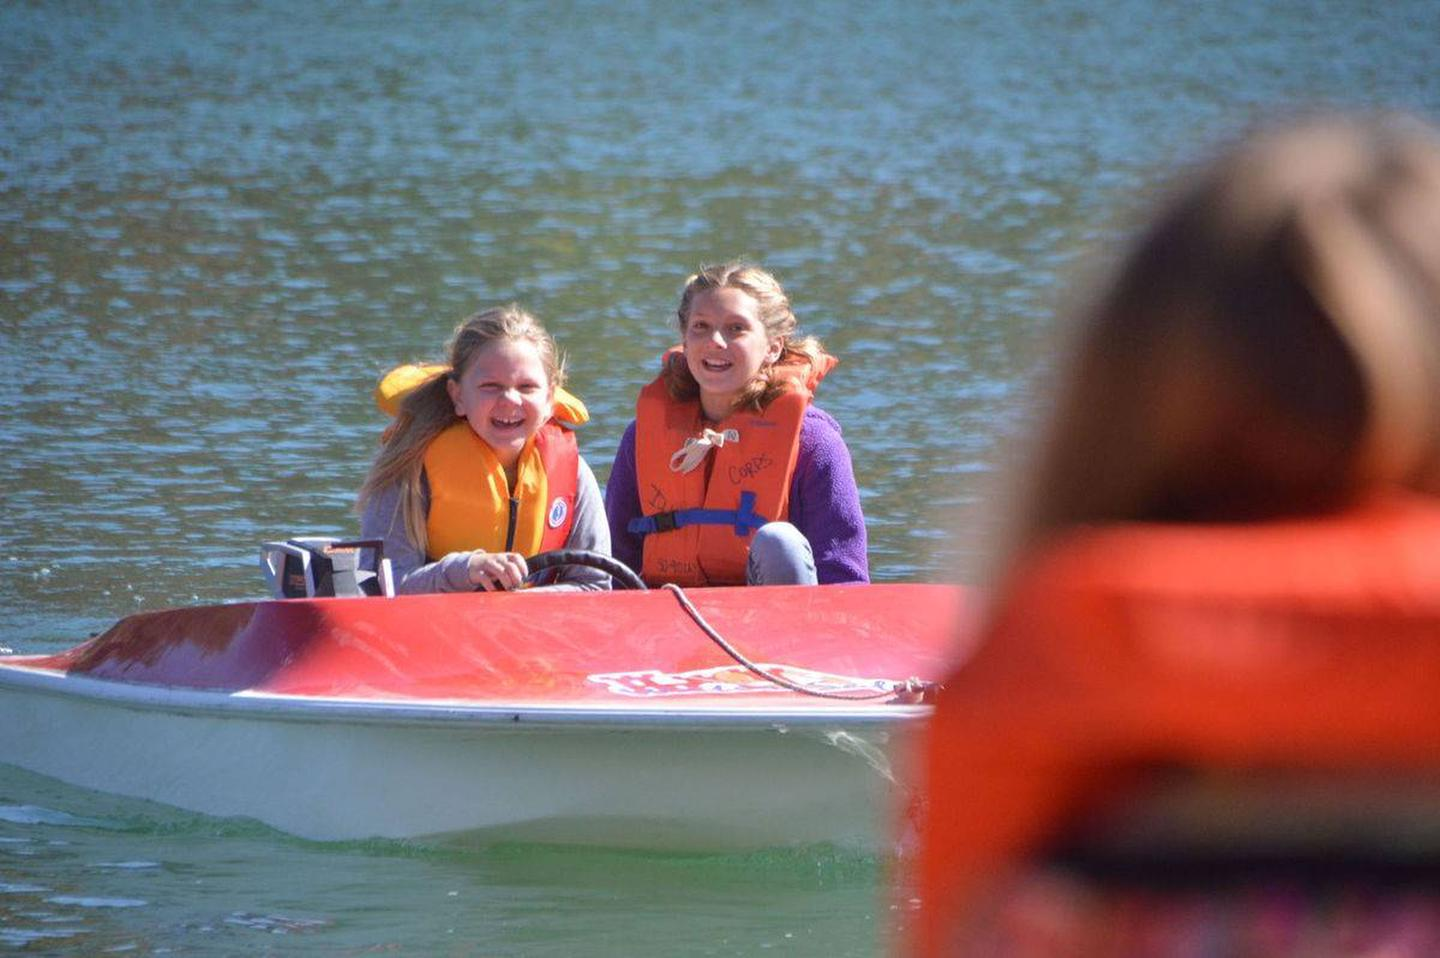 Jake's Day Event  at Cold BrookKid's learning how to operate a motor boat along with water safety